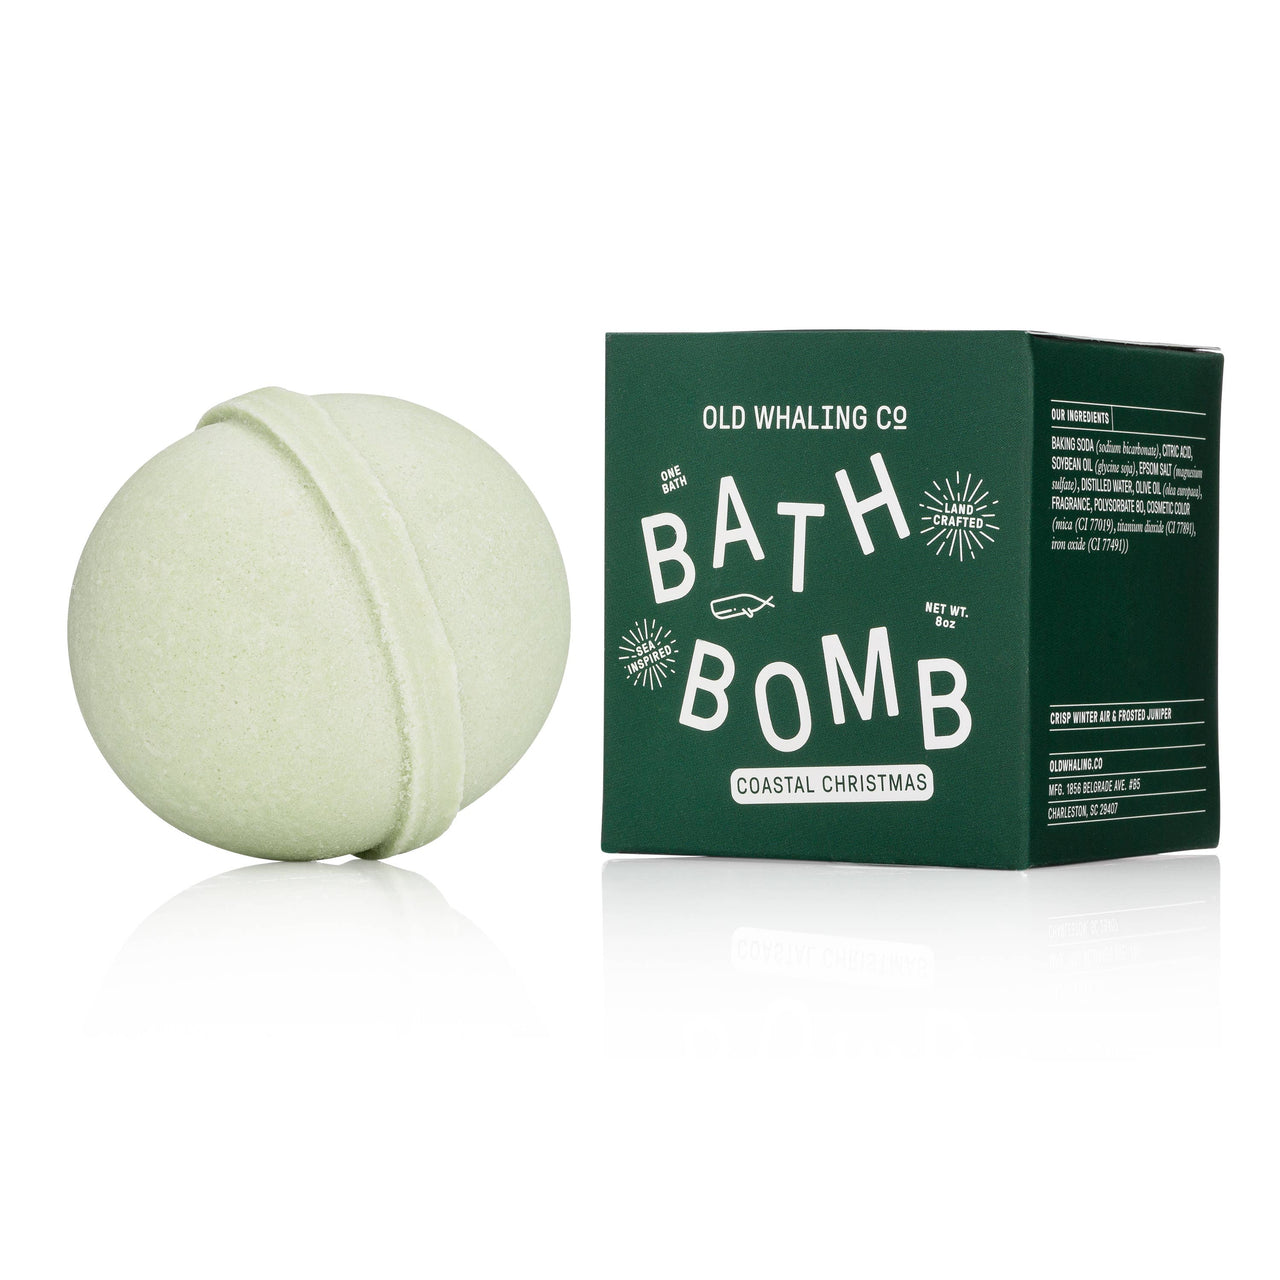 Old Whaling Company - Coastal Christmas Bath Bomb